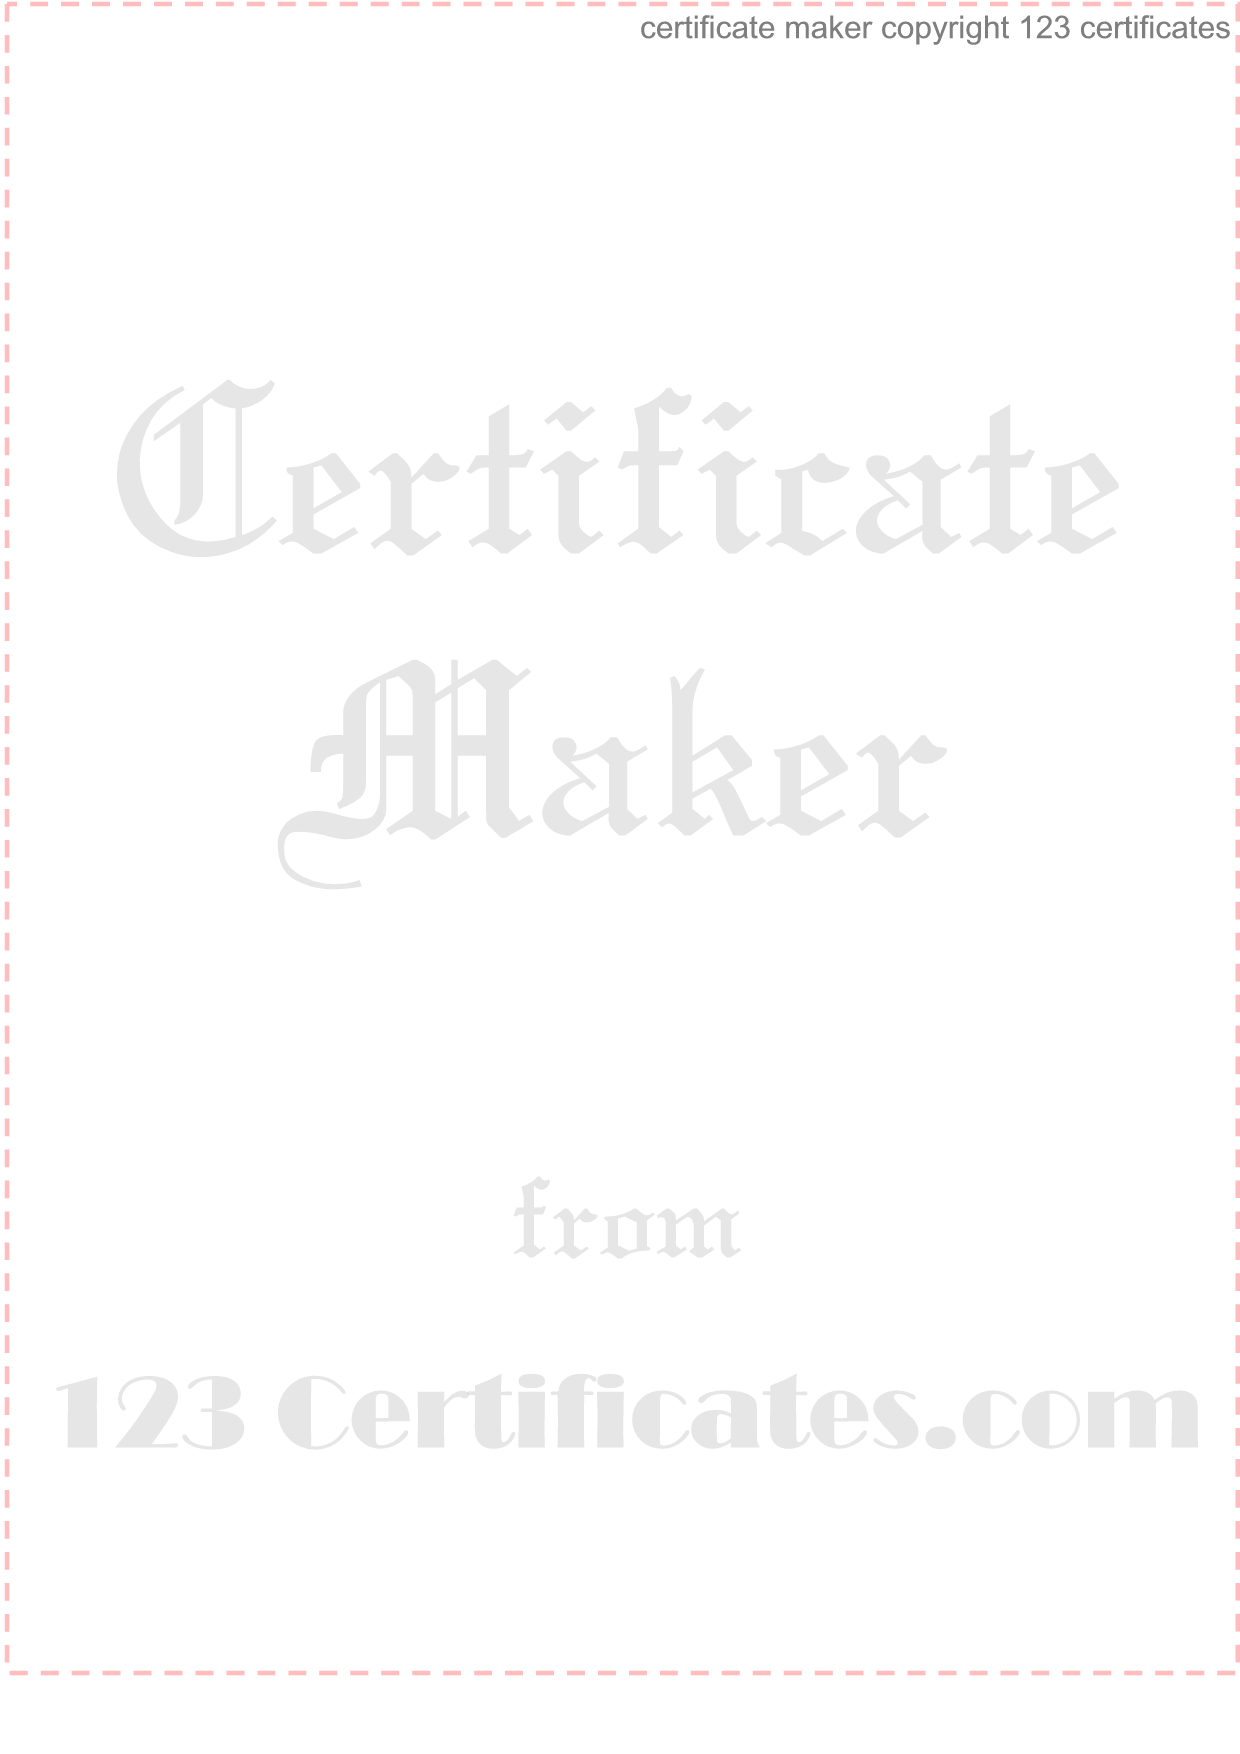 Certificate of completion template edit online or use the sample certificate of completion xflitez Gallery